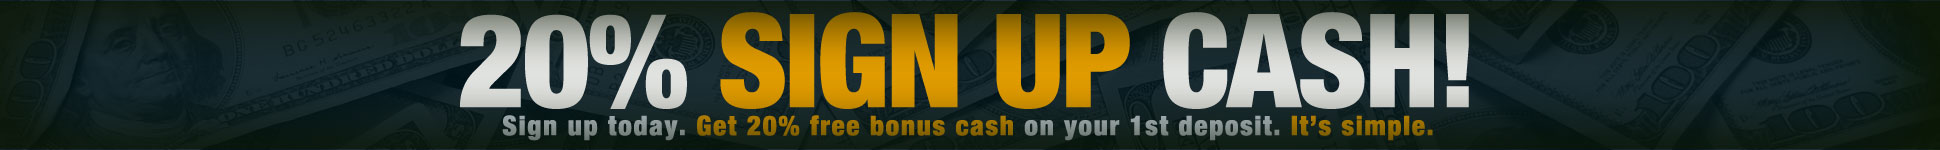 Join and get 20% Cash Back On First Deposit